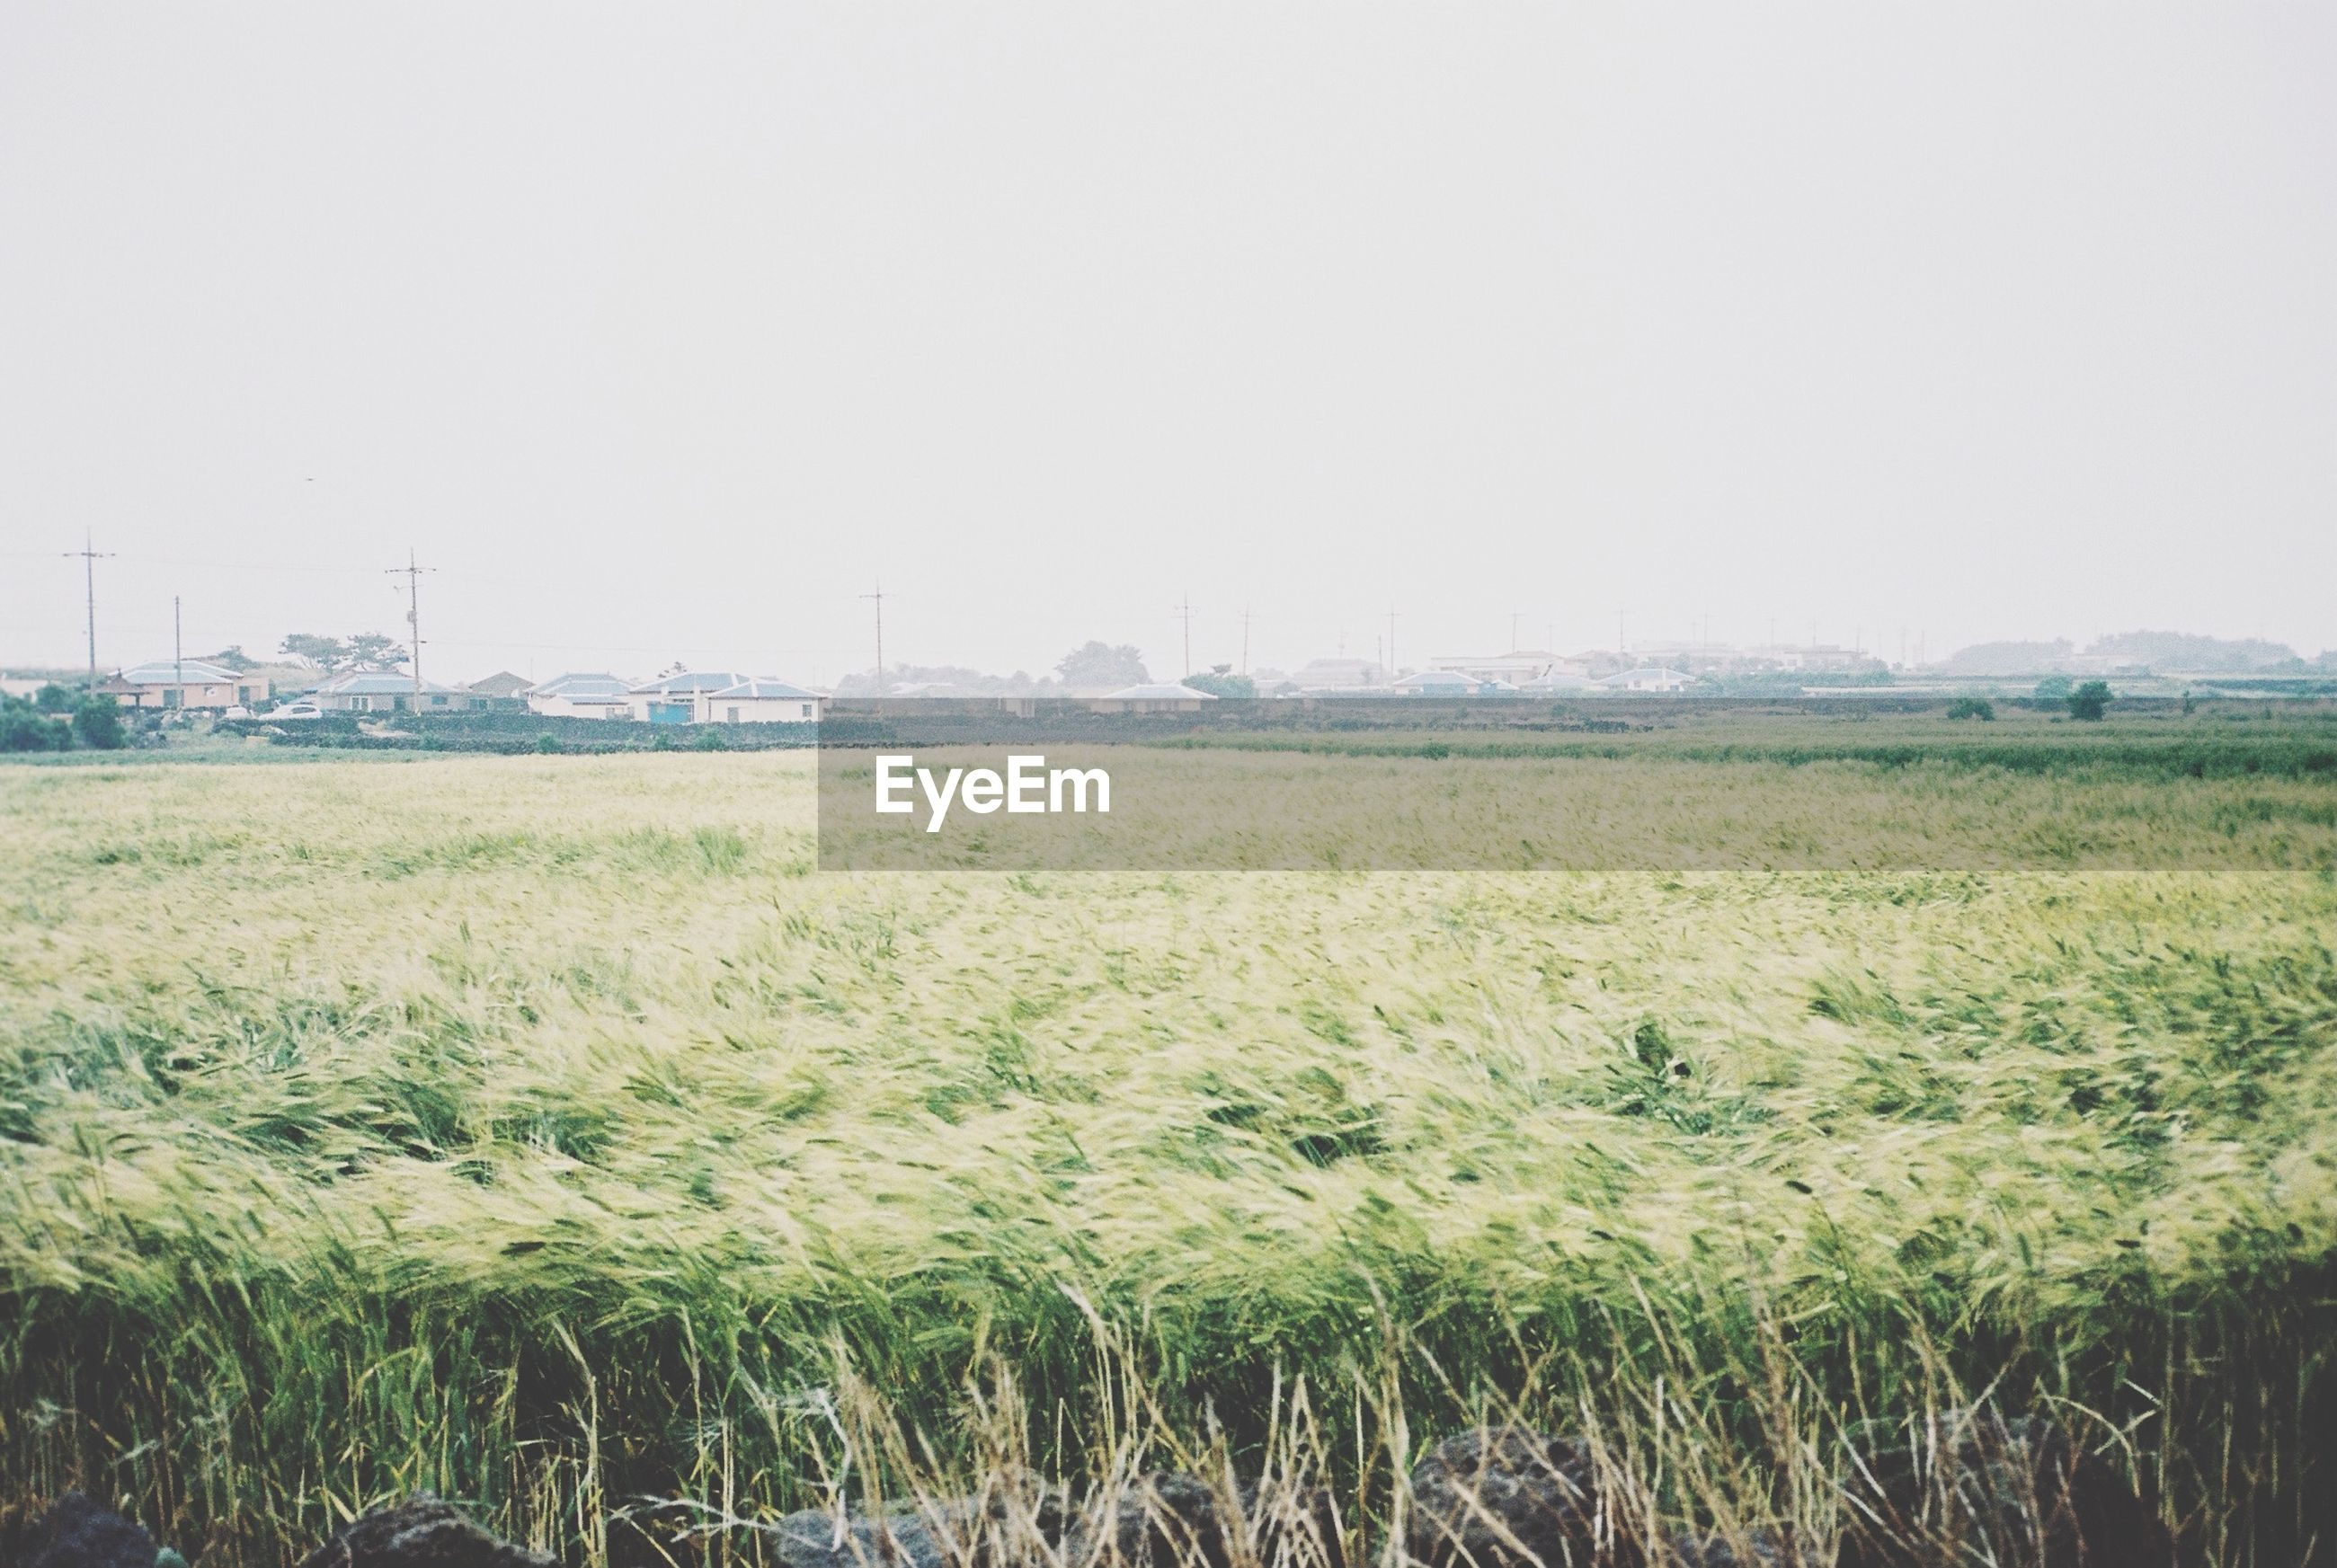 clear sky, copy space, field, landscape, grass, growth, rural scene, tranquility, tranquil scene, nature, plant, agriculture, beauty in nature, green color, farm, day, scenics, outdoors, no people, crop